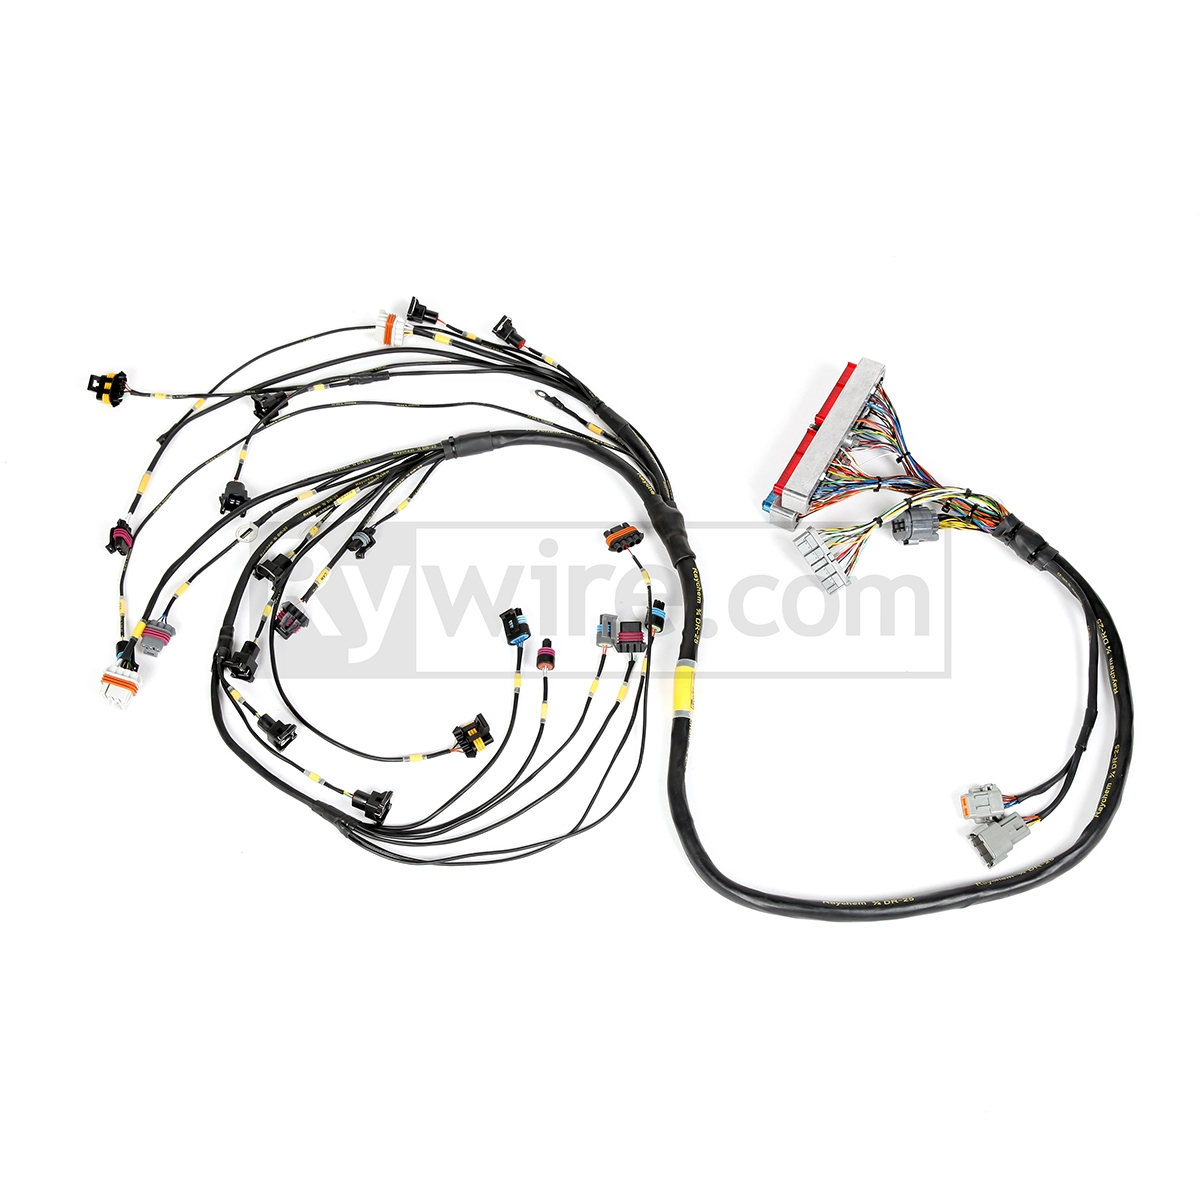 E46 Ls1 Wiring Harness Diagram Will Be A Thing Engine 22 Images And Computer